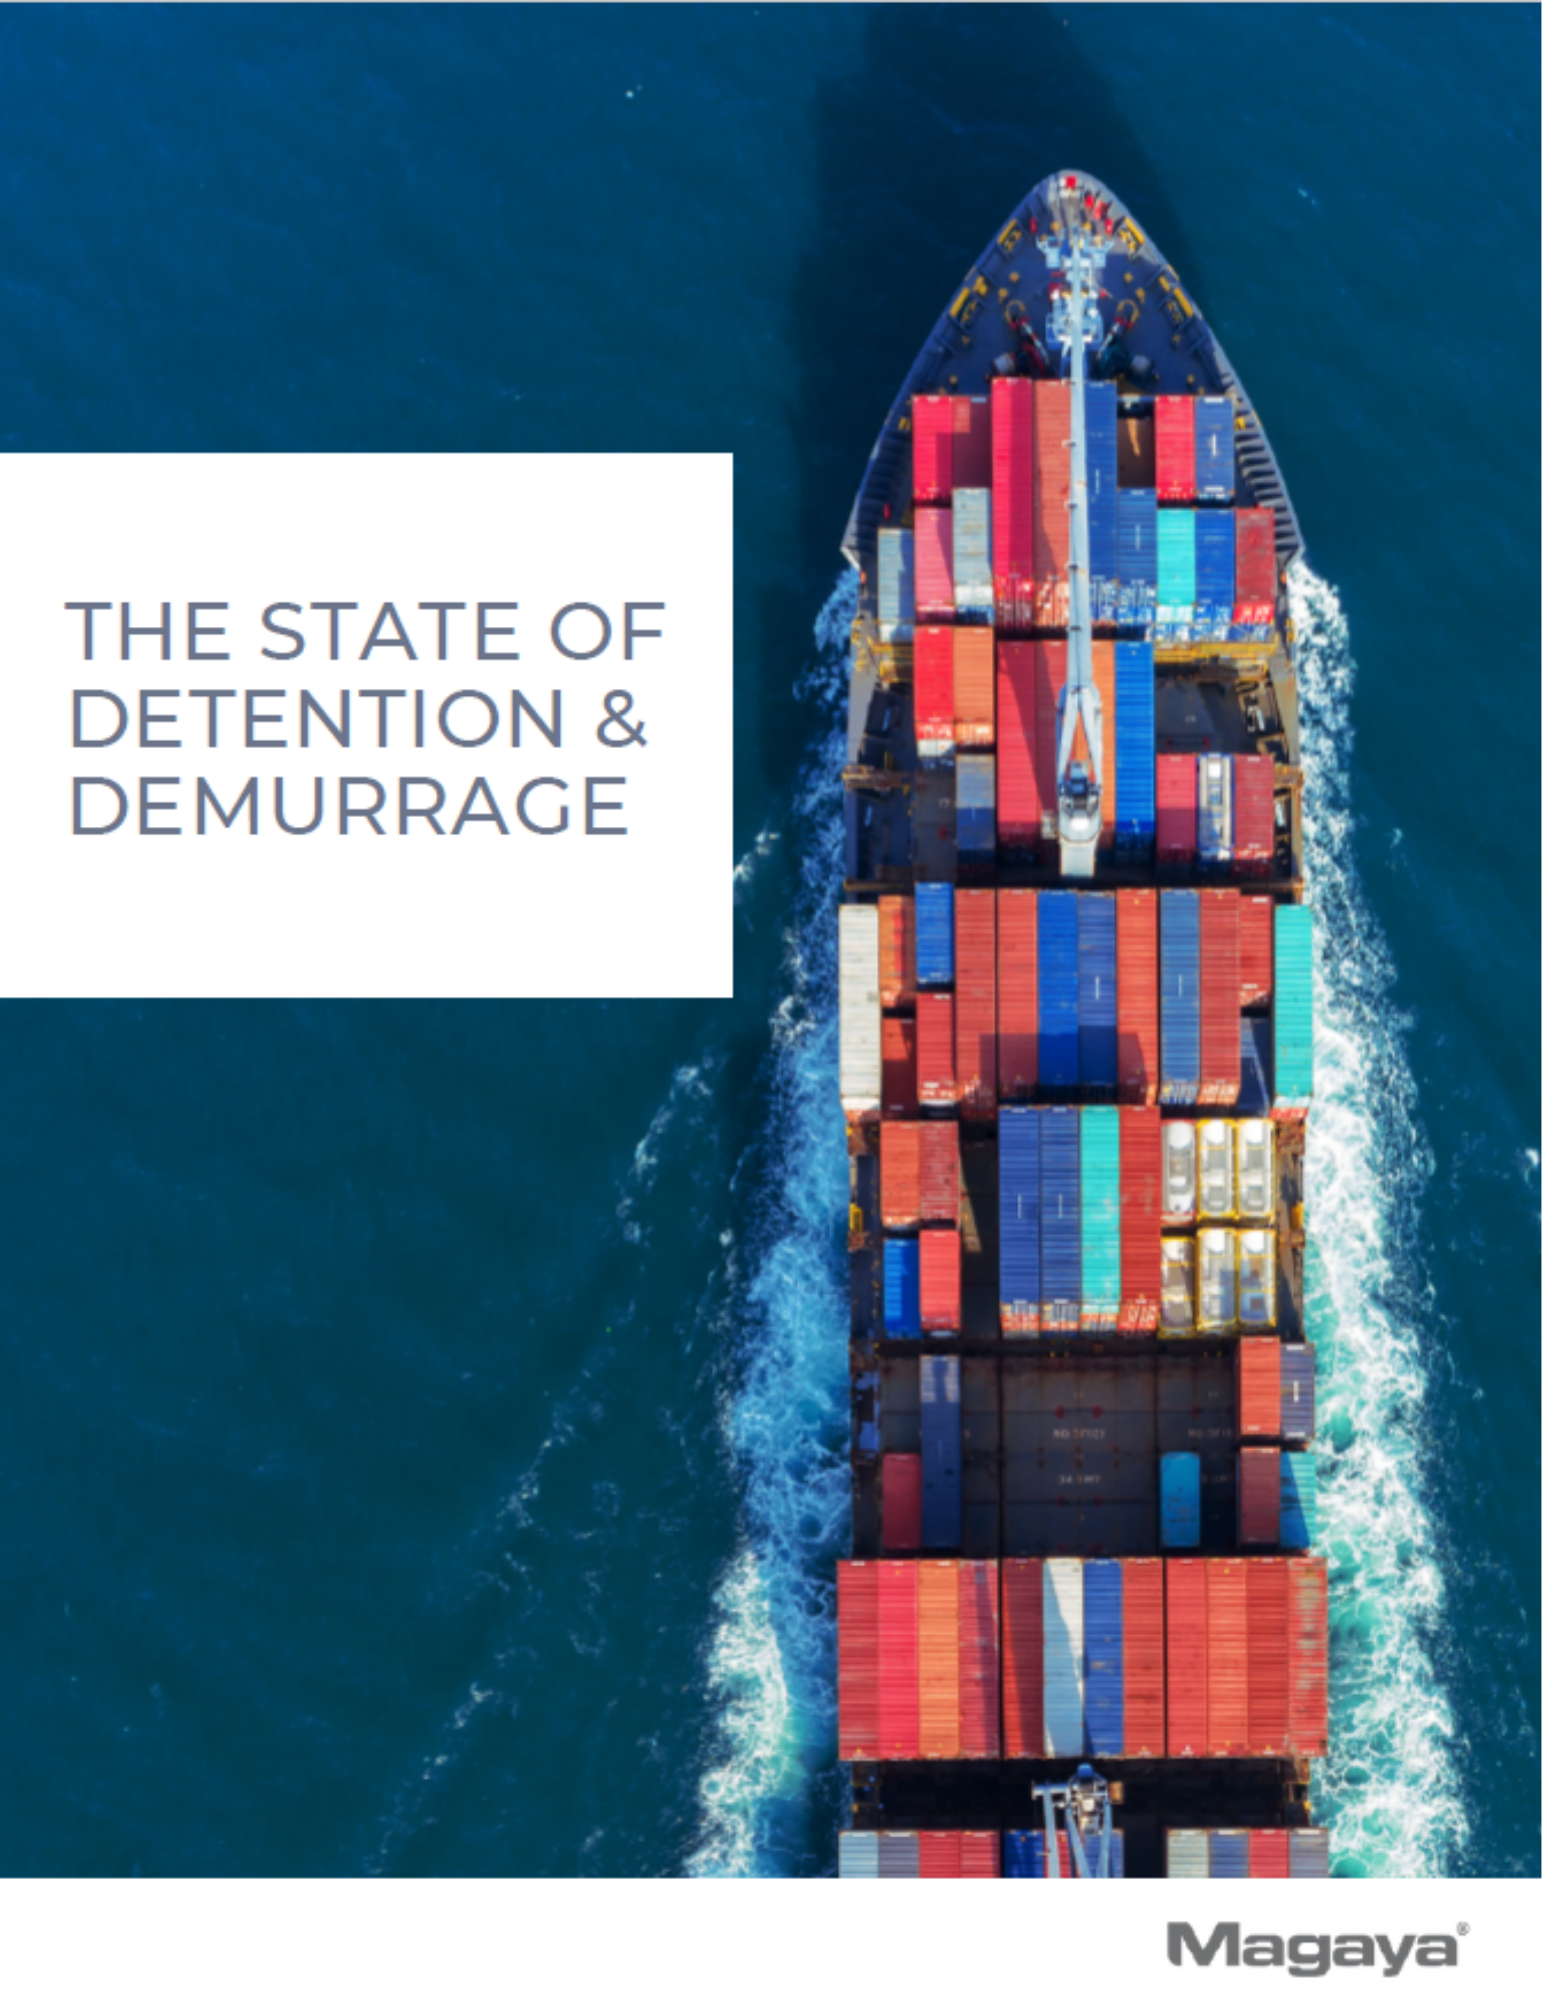 The State of Detention & Demurrage